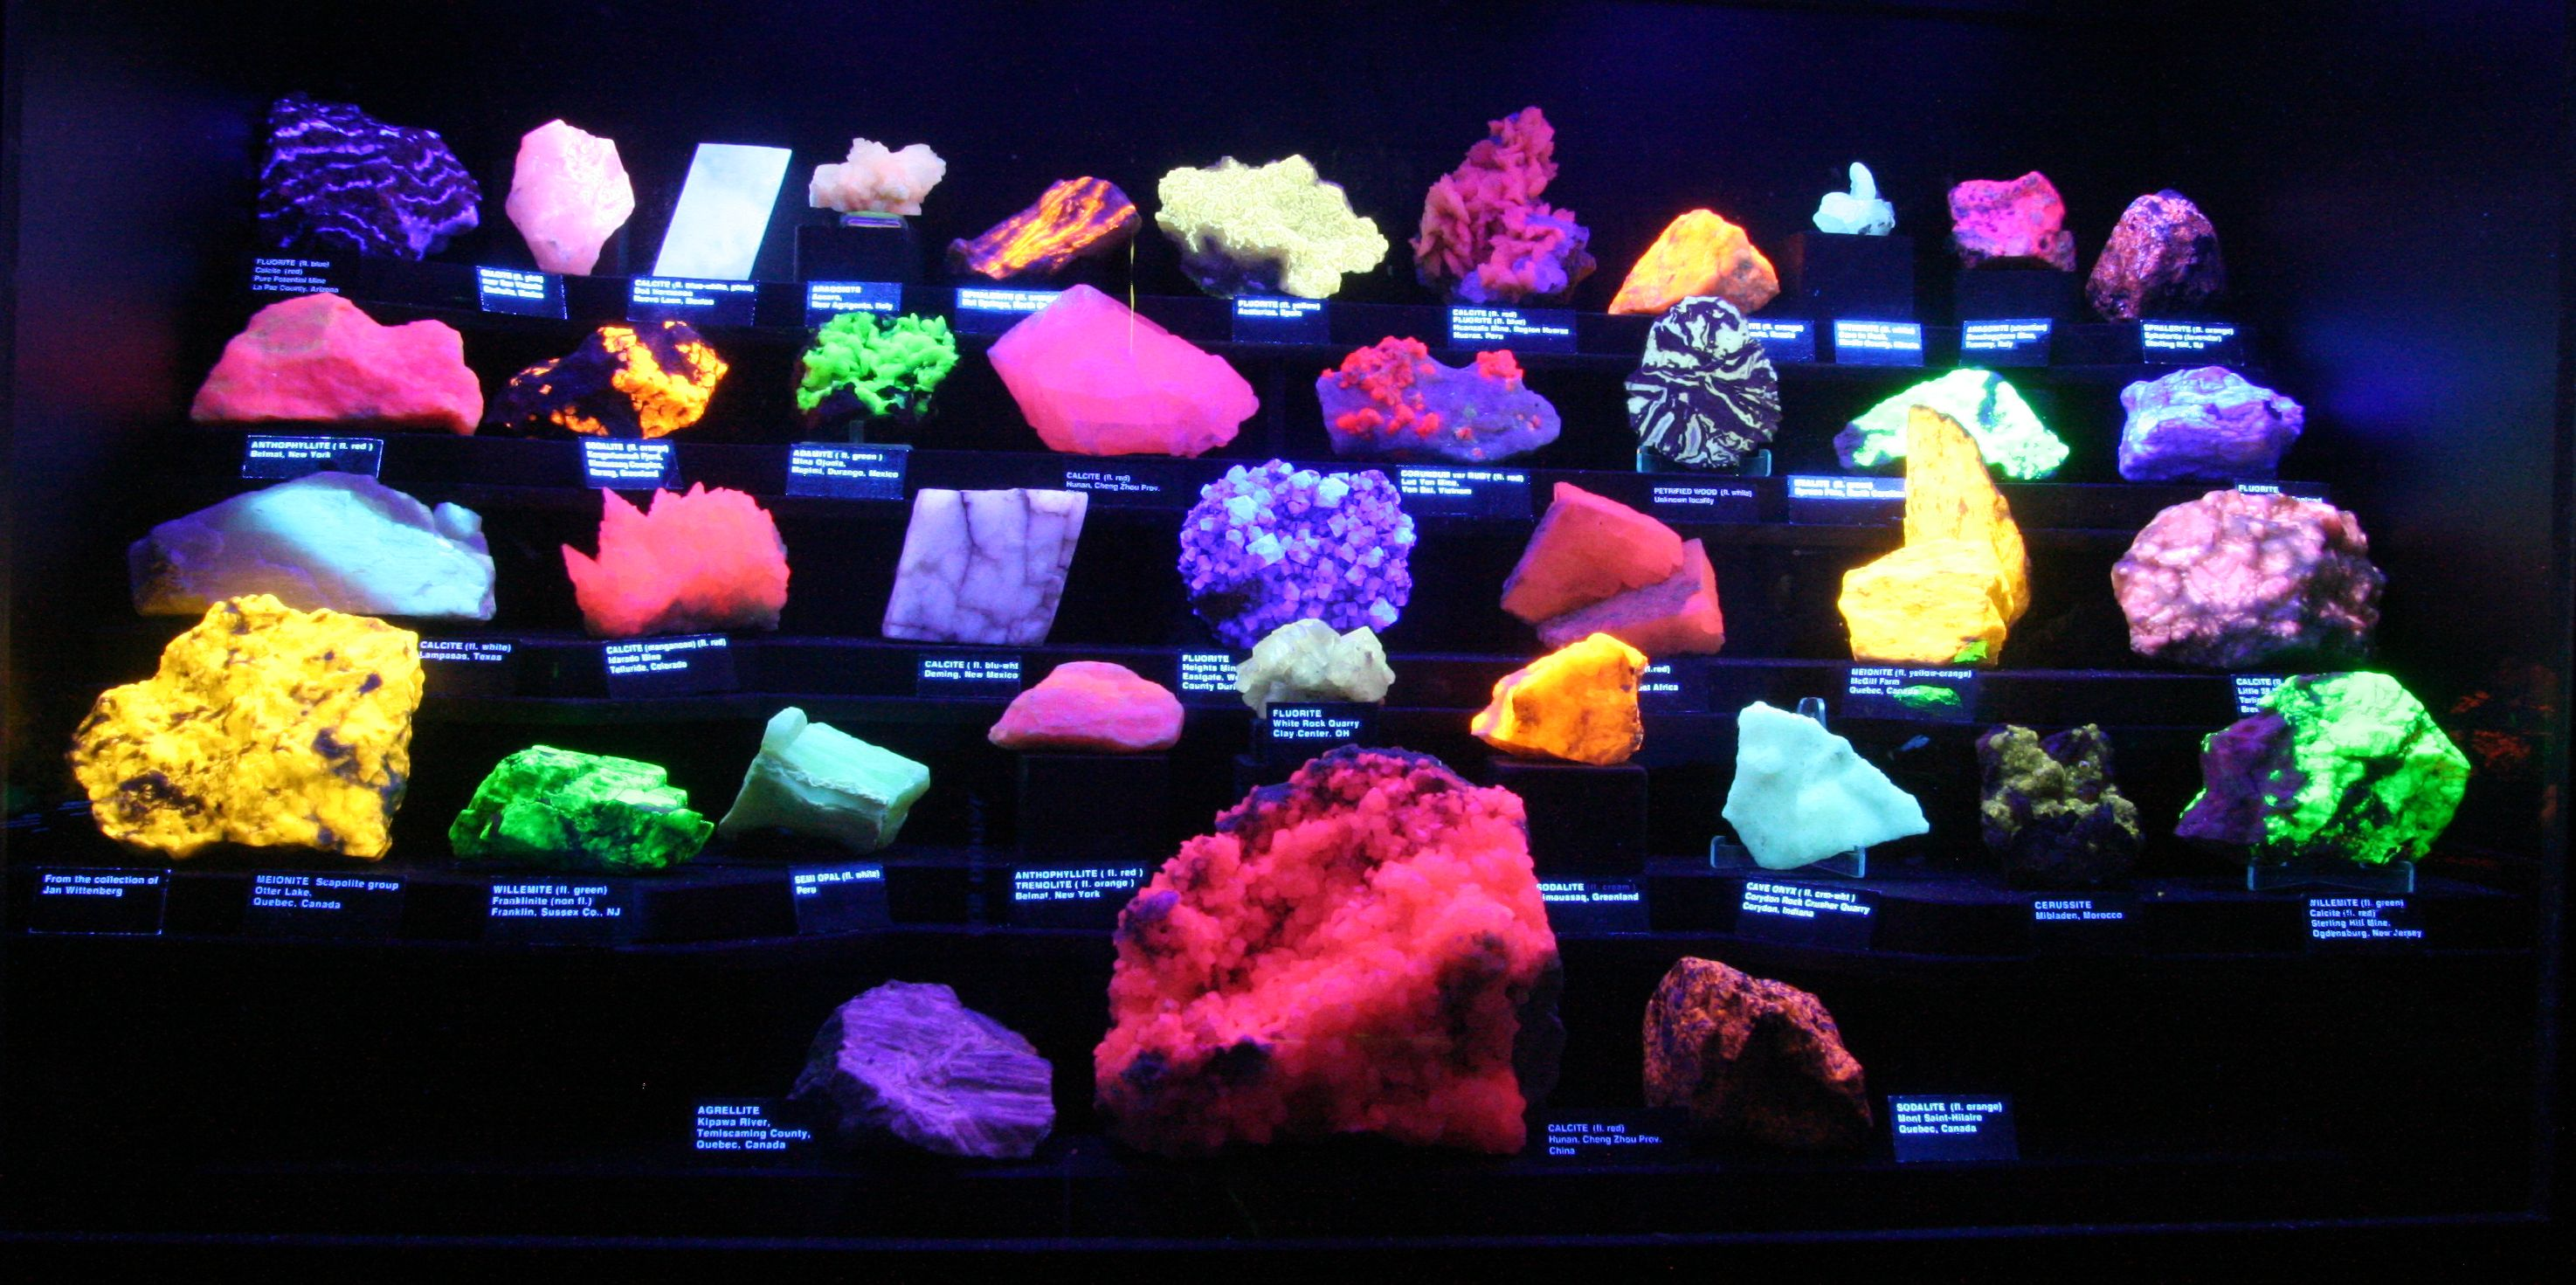 Fluorescent gems and minerals at the Huntsville Gem, Jewelry, and Mineral Show